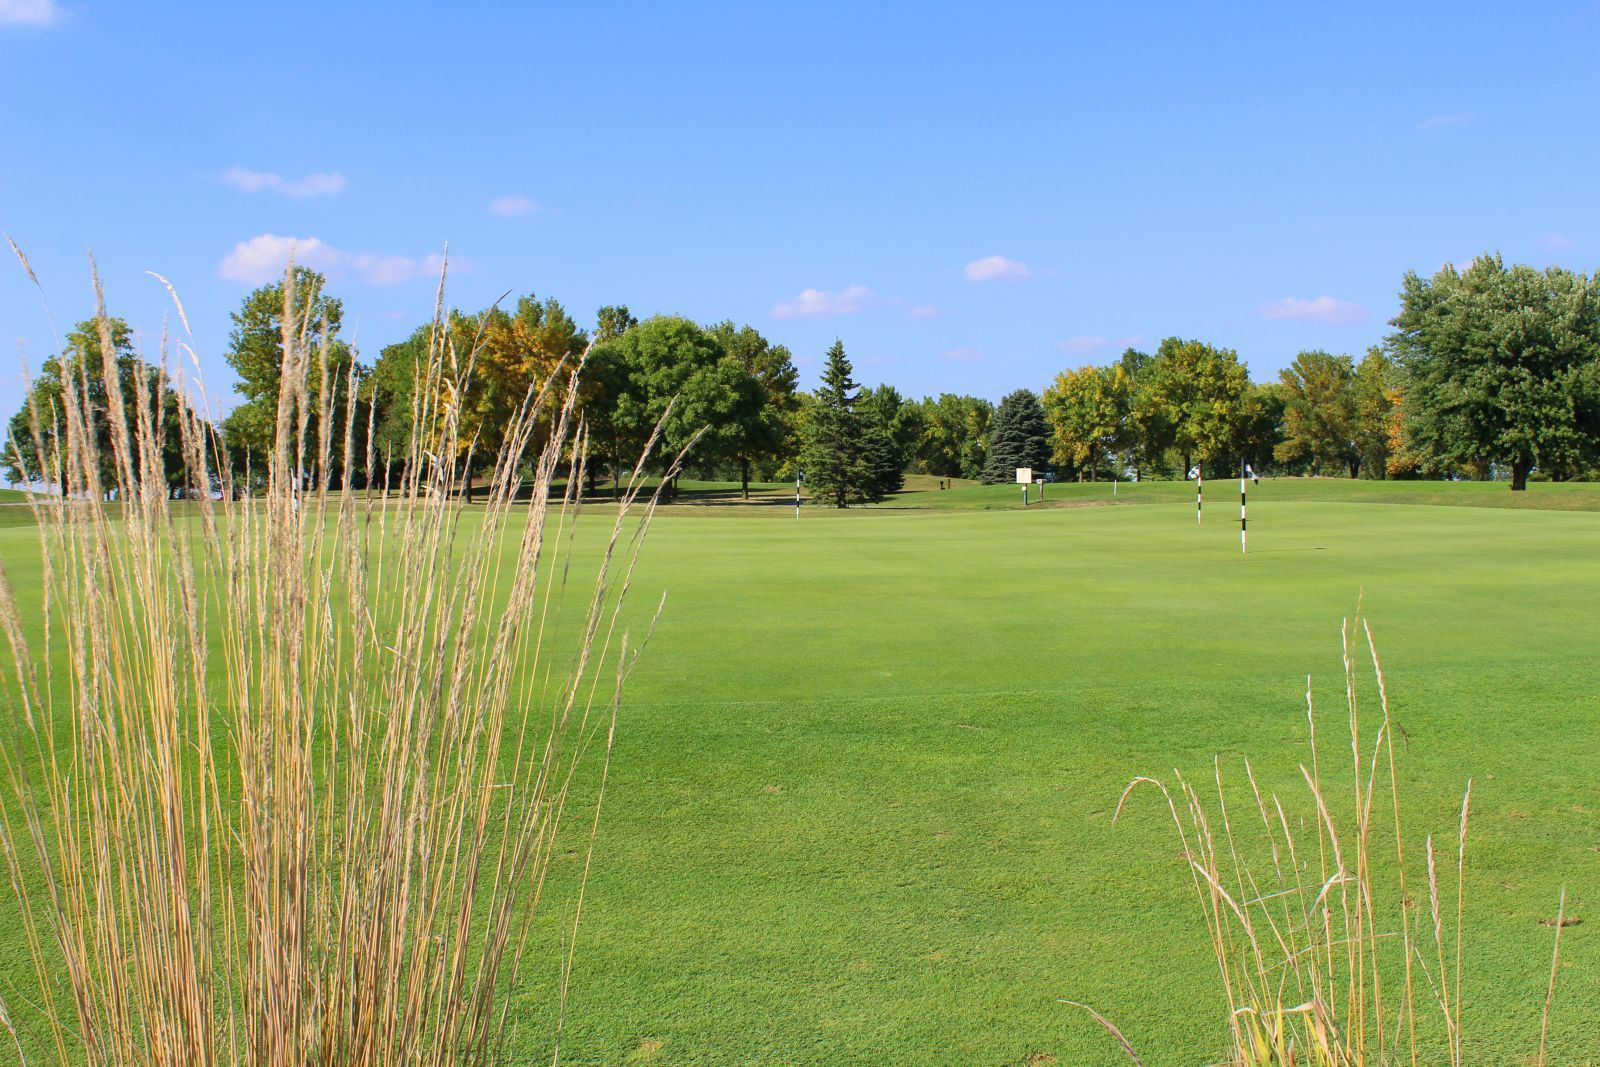 Ames golf and country club cover picture